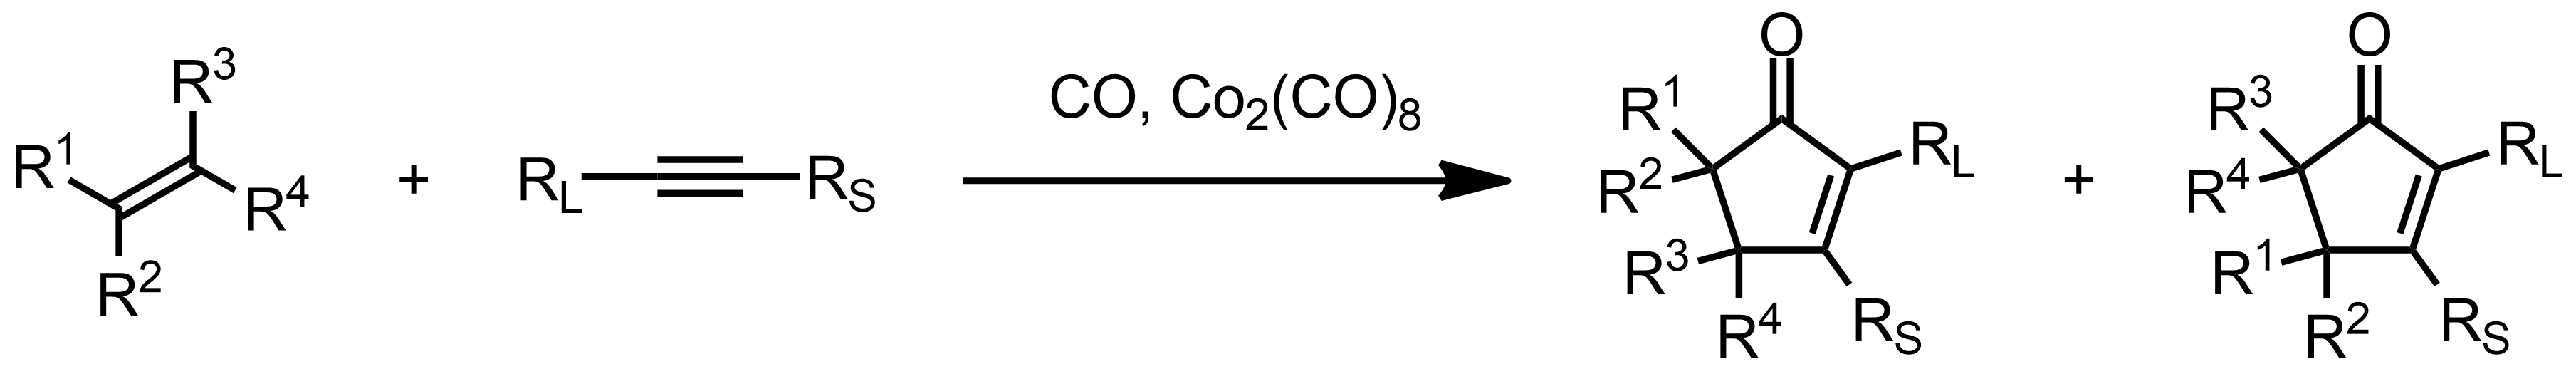 Schematic representation of the Pauson-Khand Reaction.